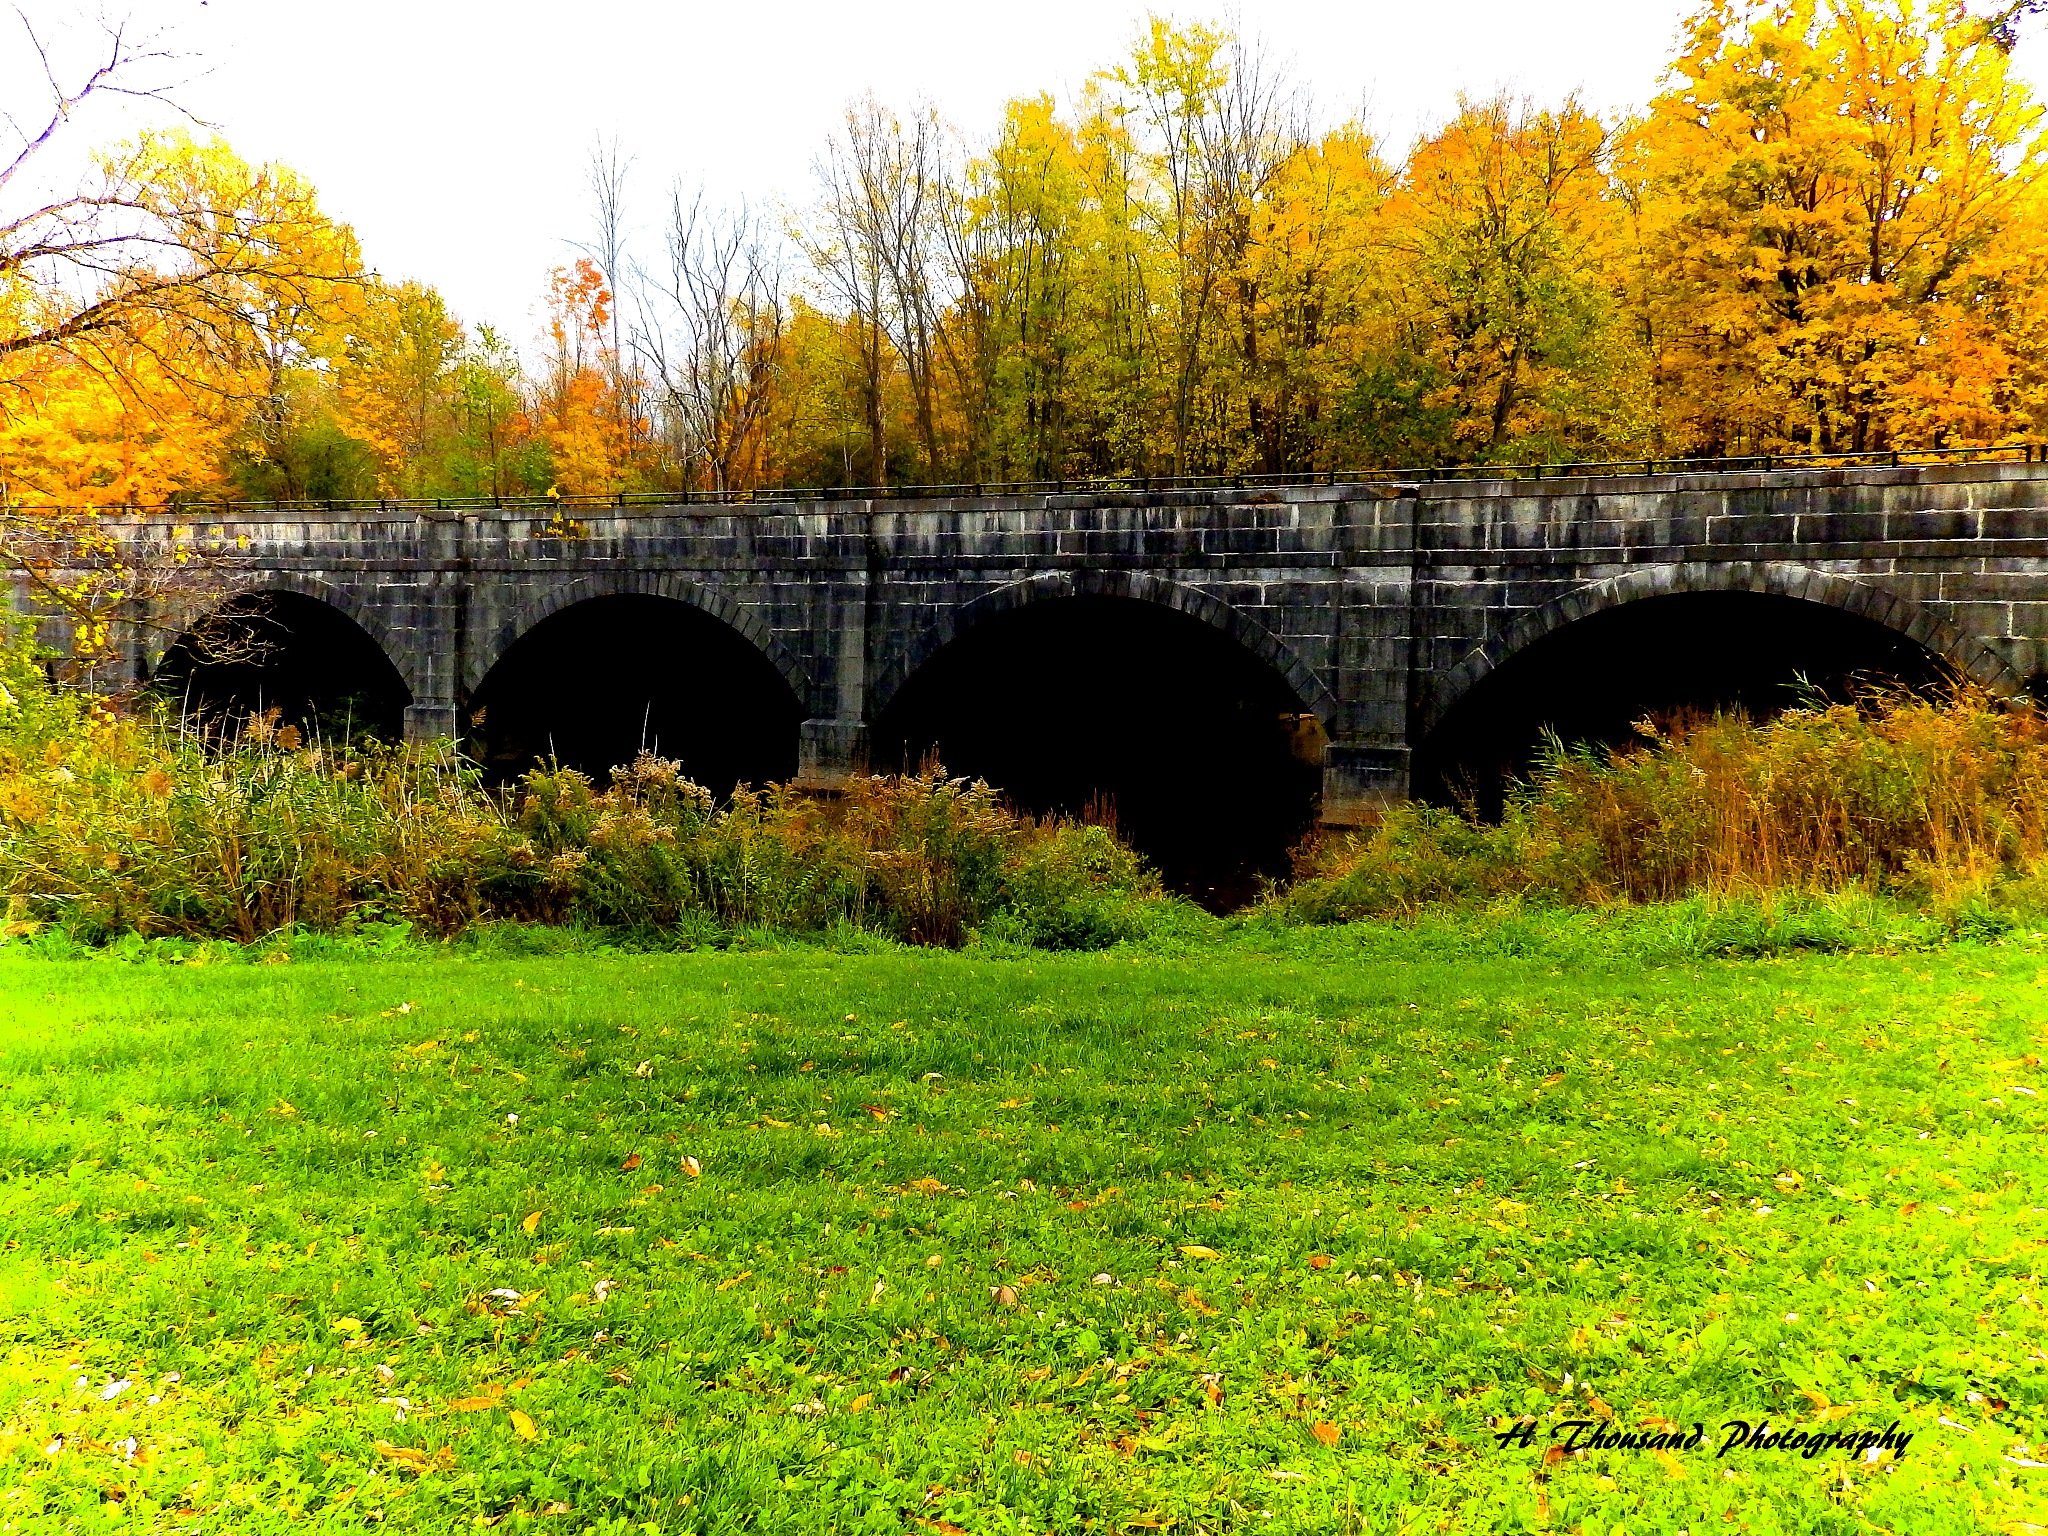 The Aquaducts on the Erie Canal by hrthousandjr